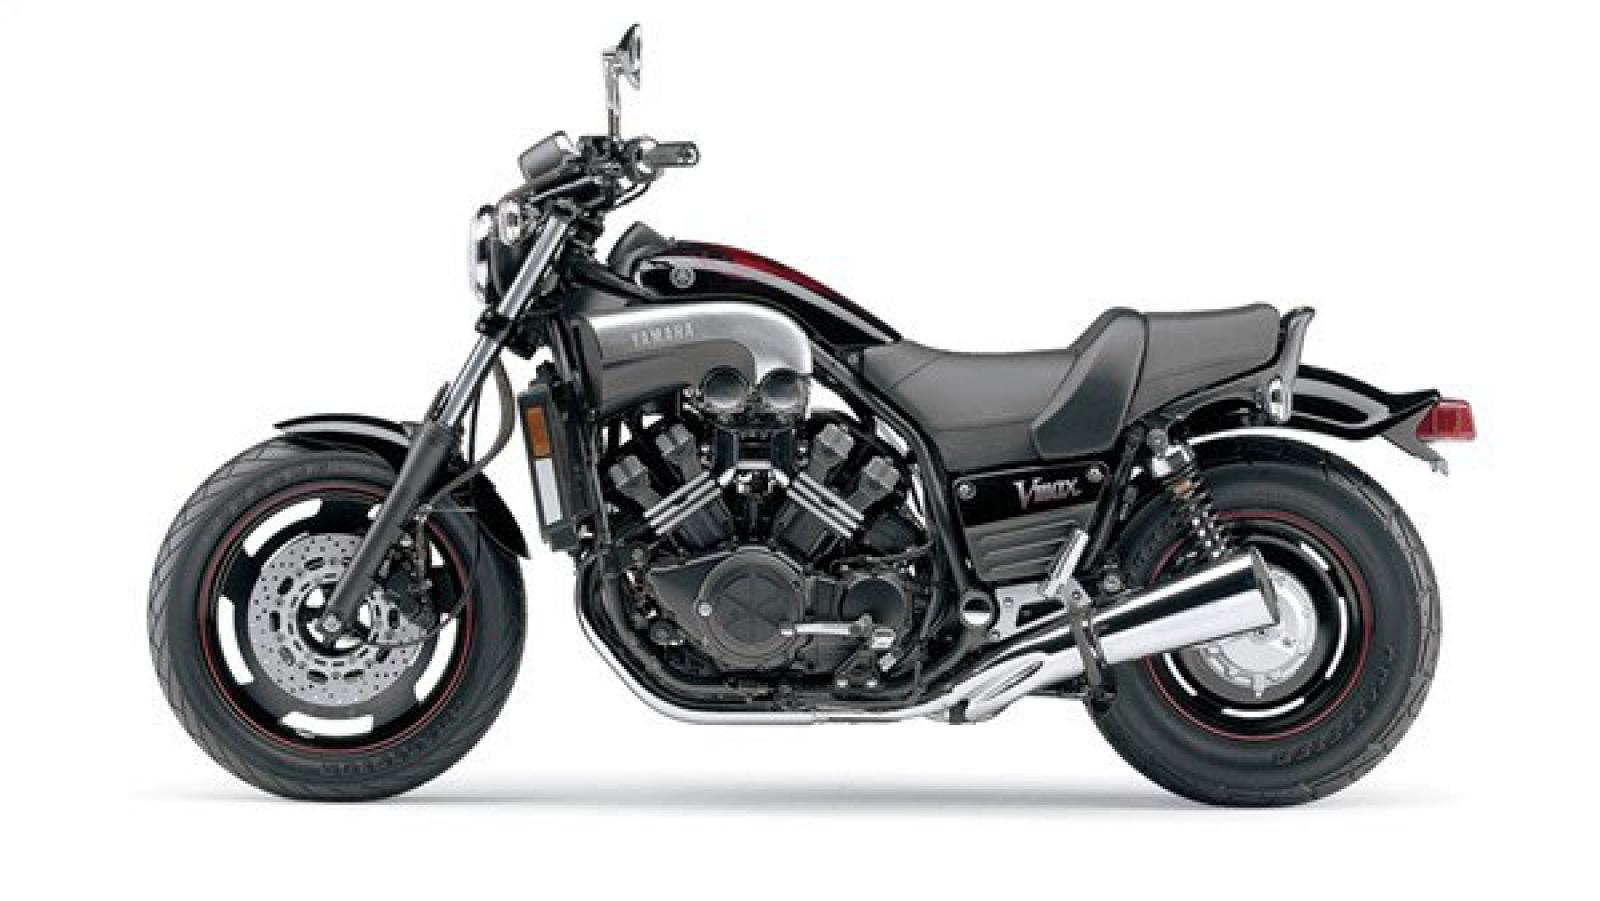 Yamaha Grizzly 700 Ignition Wiring Diagram additionally 2017 Motorcycle Ktm Adventure as well Yamaha Virago Wiring moreover 007044 together with 6 Volt Motorcycle Power Wheels. on yamaha vmax wiring diagram